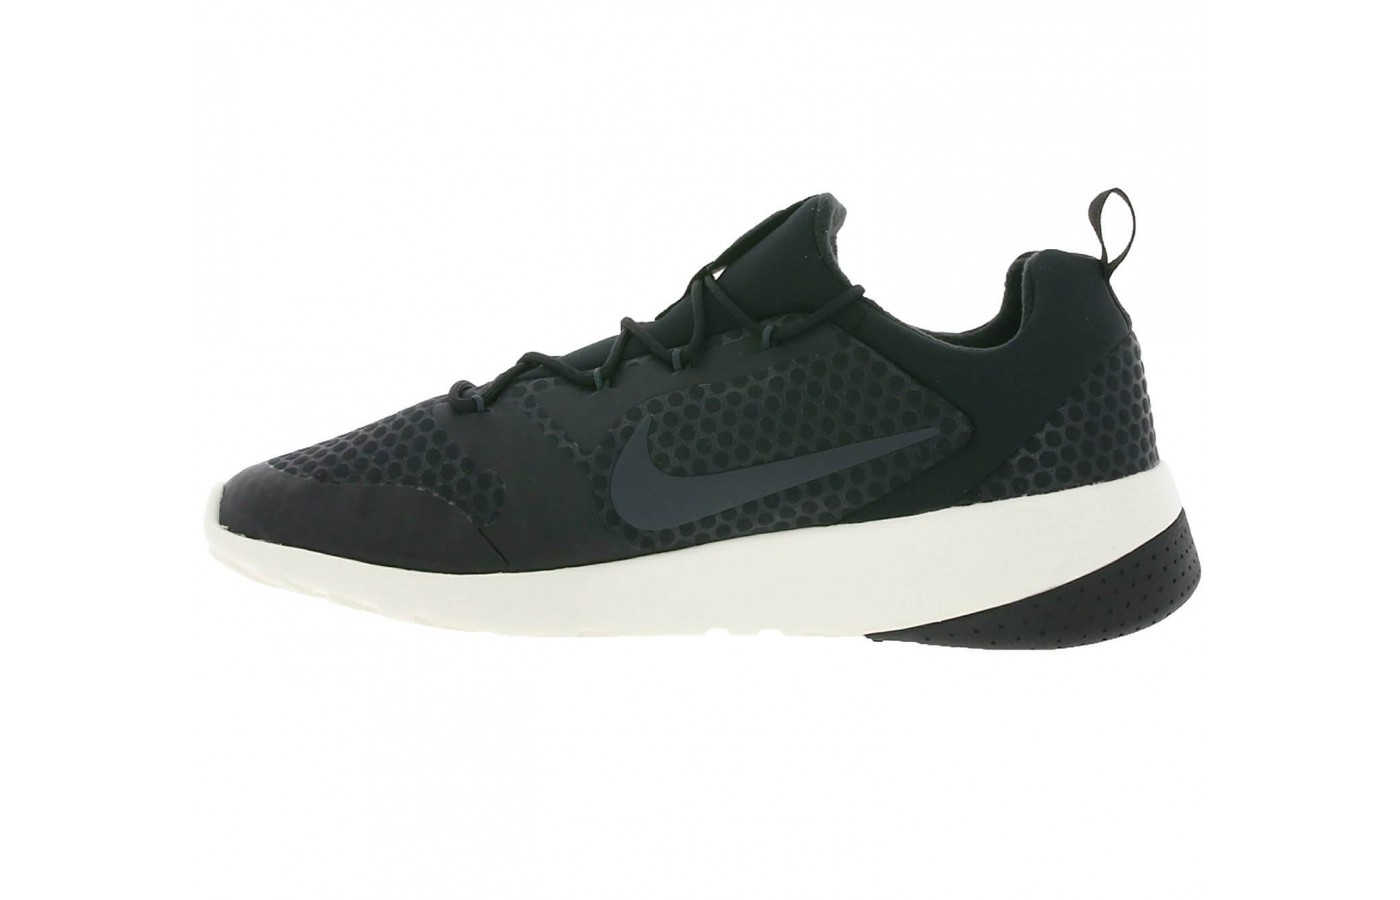 The closest approximation for what the Nike CK Racer's drop is would be around 9 mm.